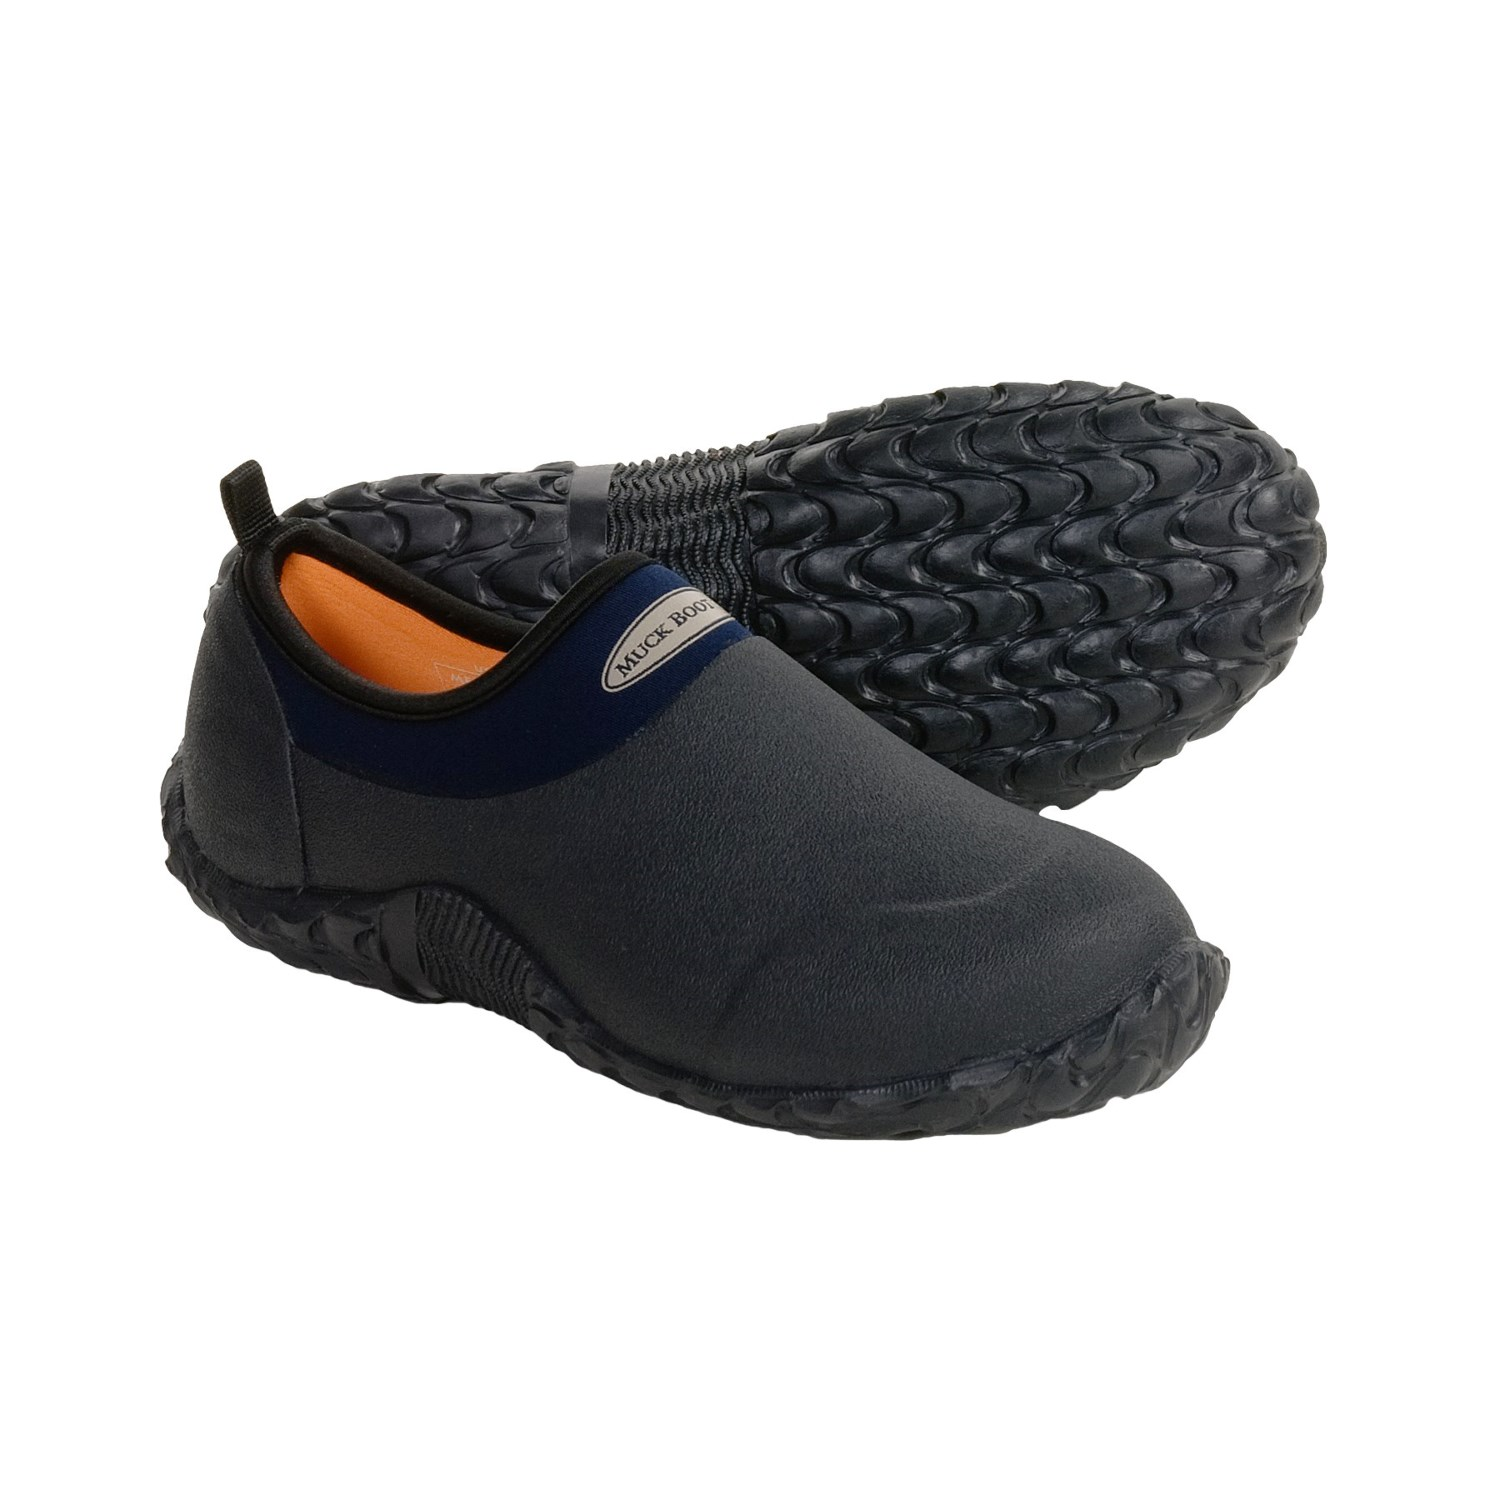 muck boot company edgewater camp shoes for men and women